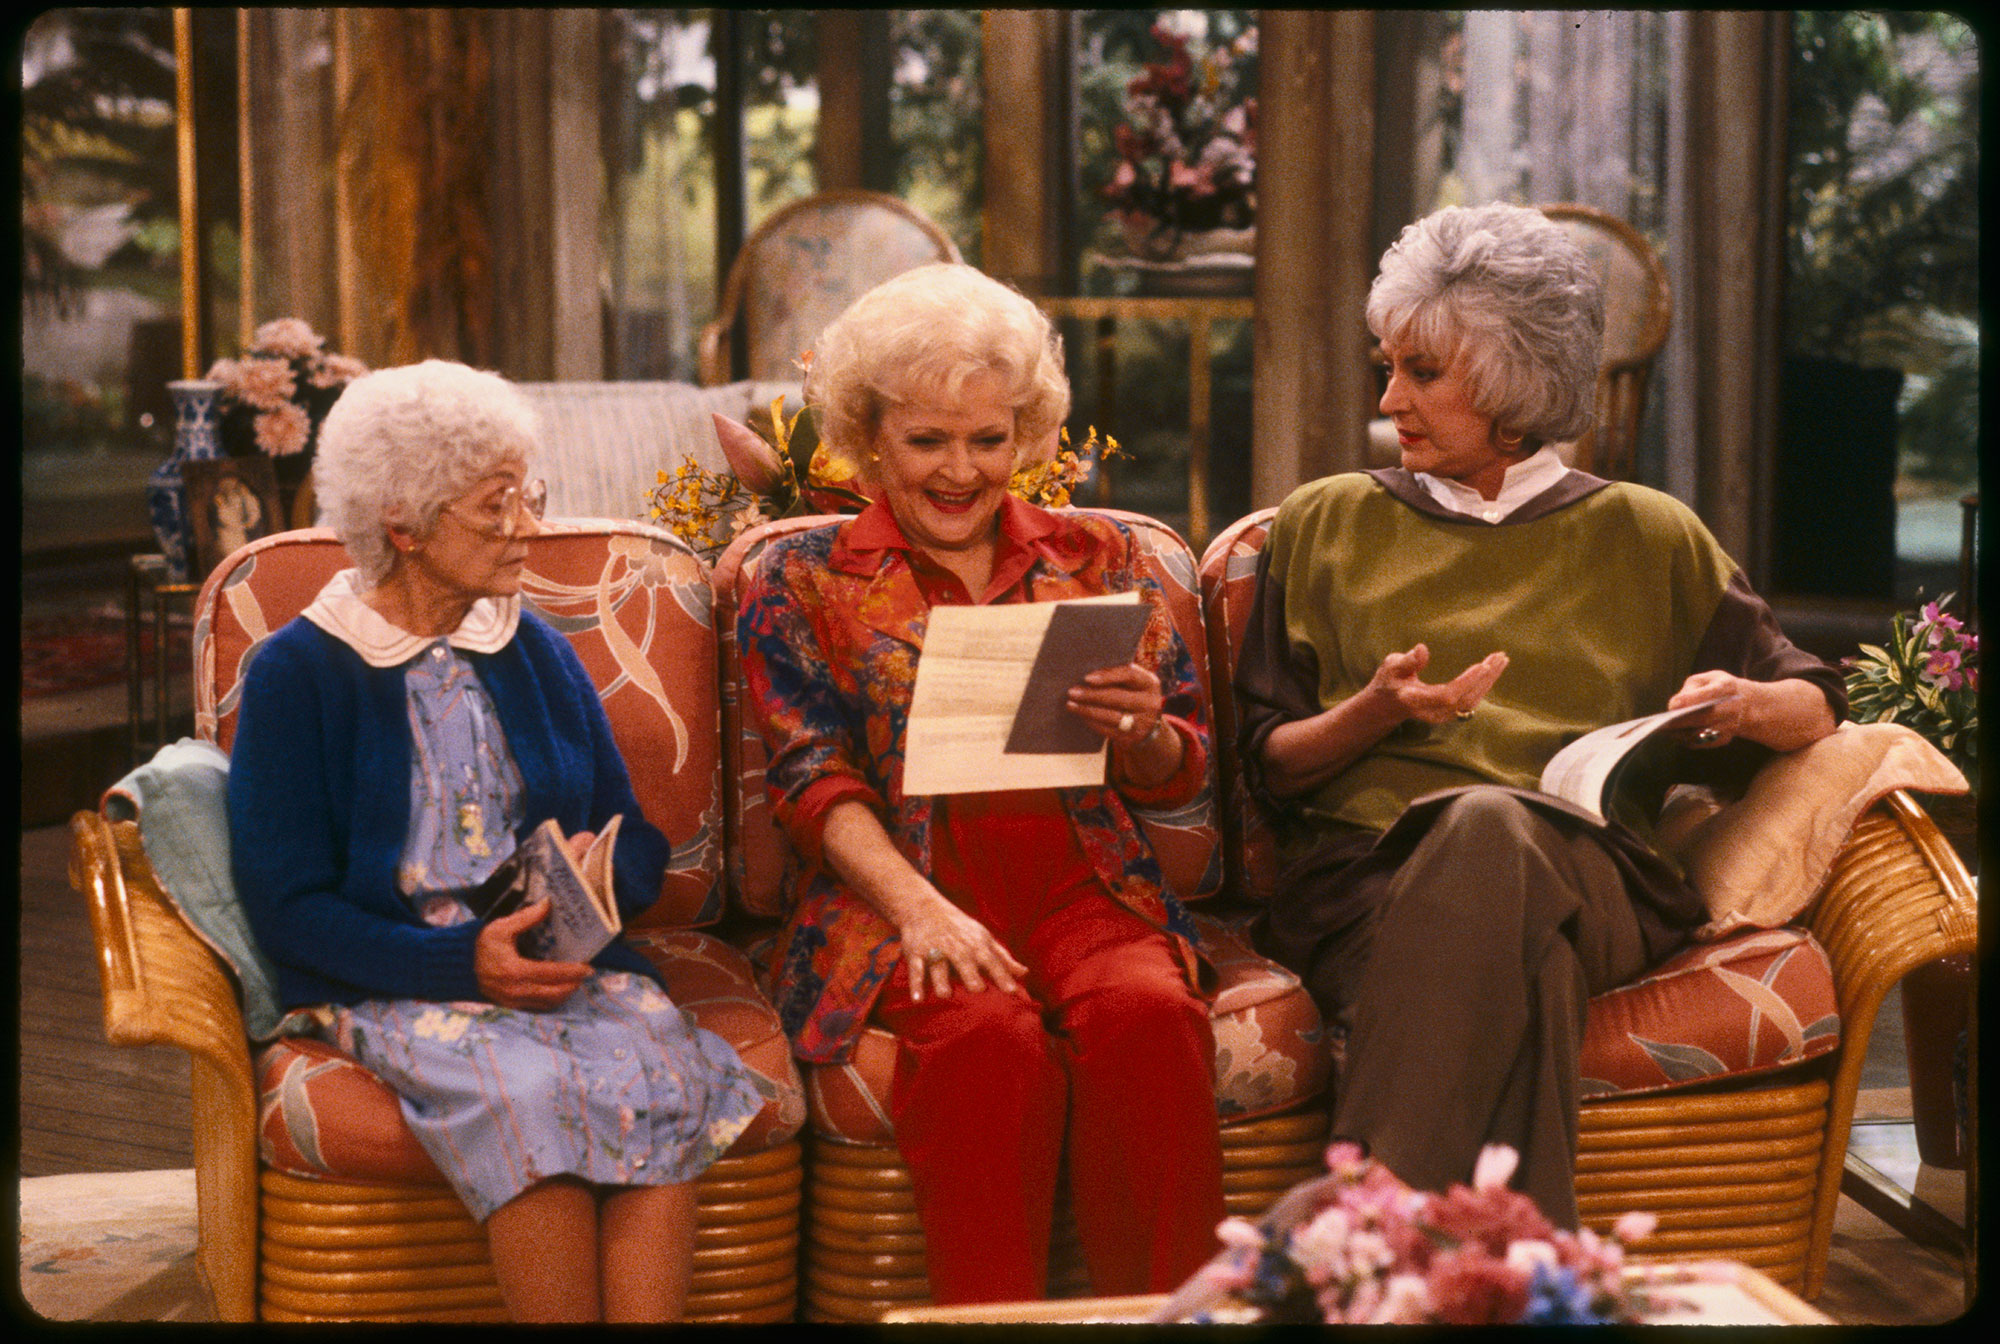 THE GOLDEN GIRLS - 9/24/85 - 9/24/92, ESTELLE GETTY, BETTY WHITE, and BEA ARTHUR - Estelle Getty, Betty White and Bea Arthur